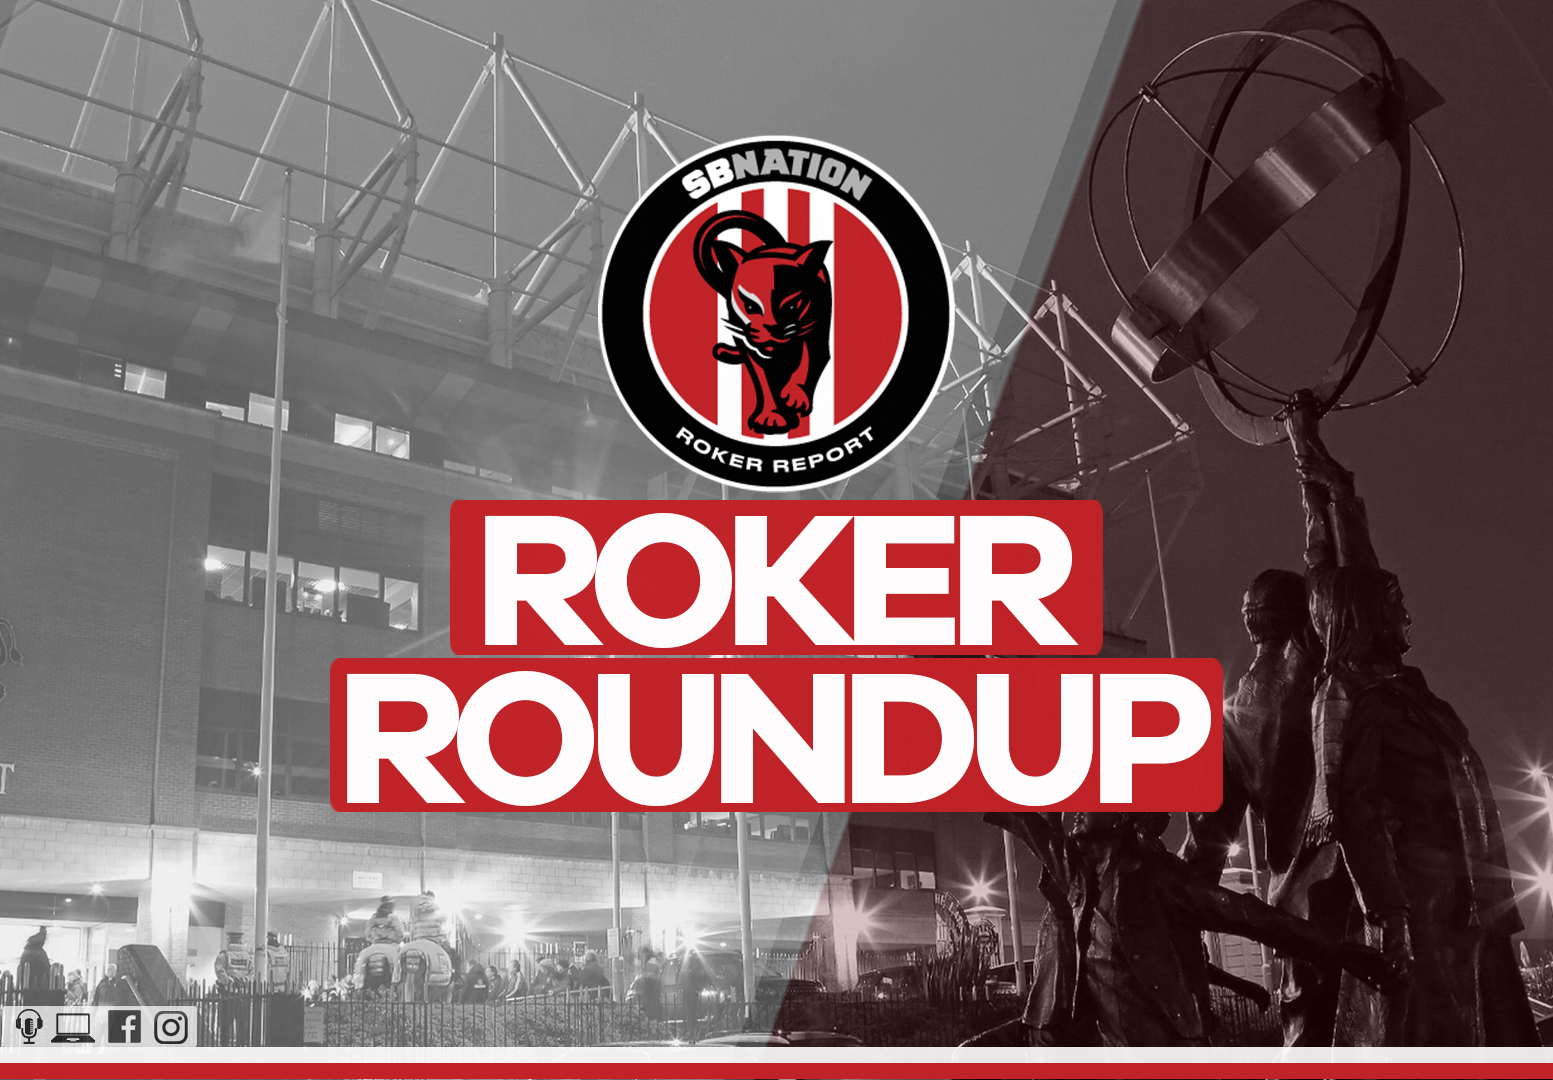 Roker Roundup: Midfielder 'agreed terms' with Sunderland on deadline day - but move fell through